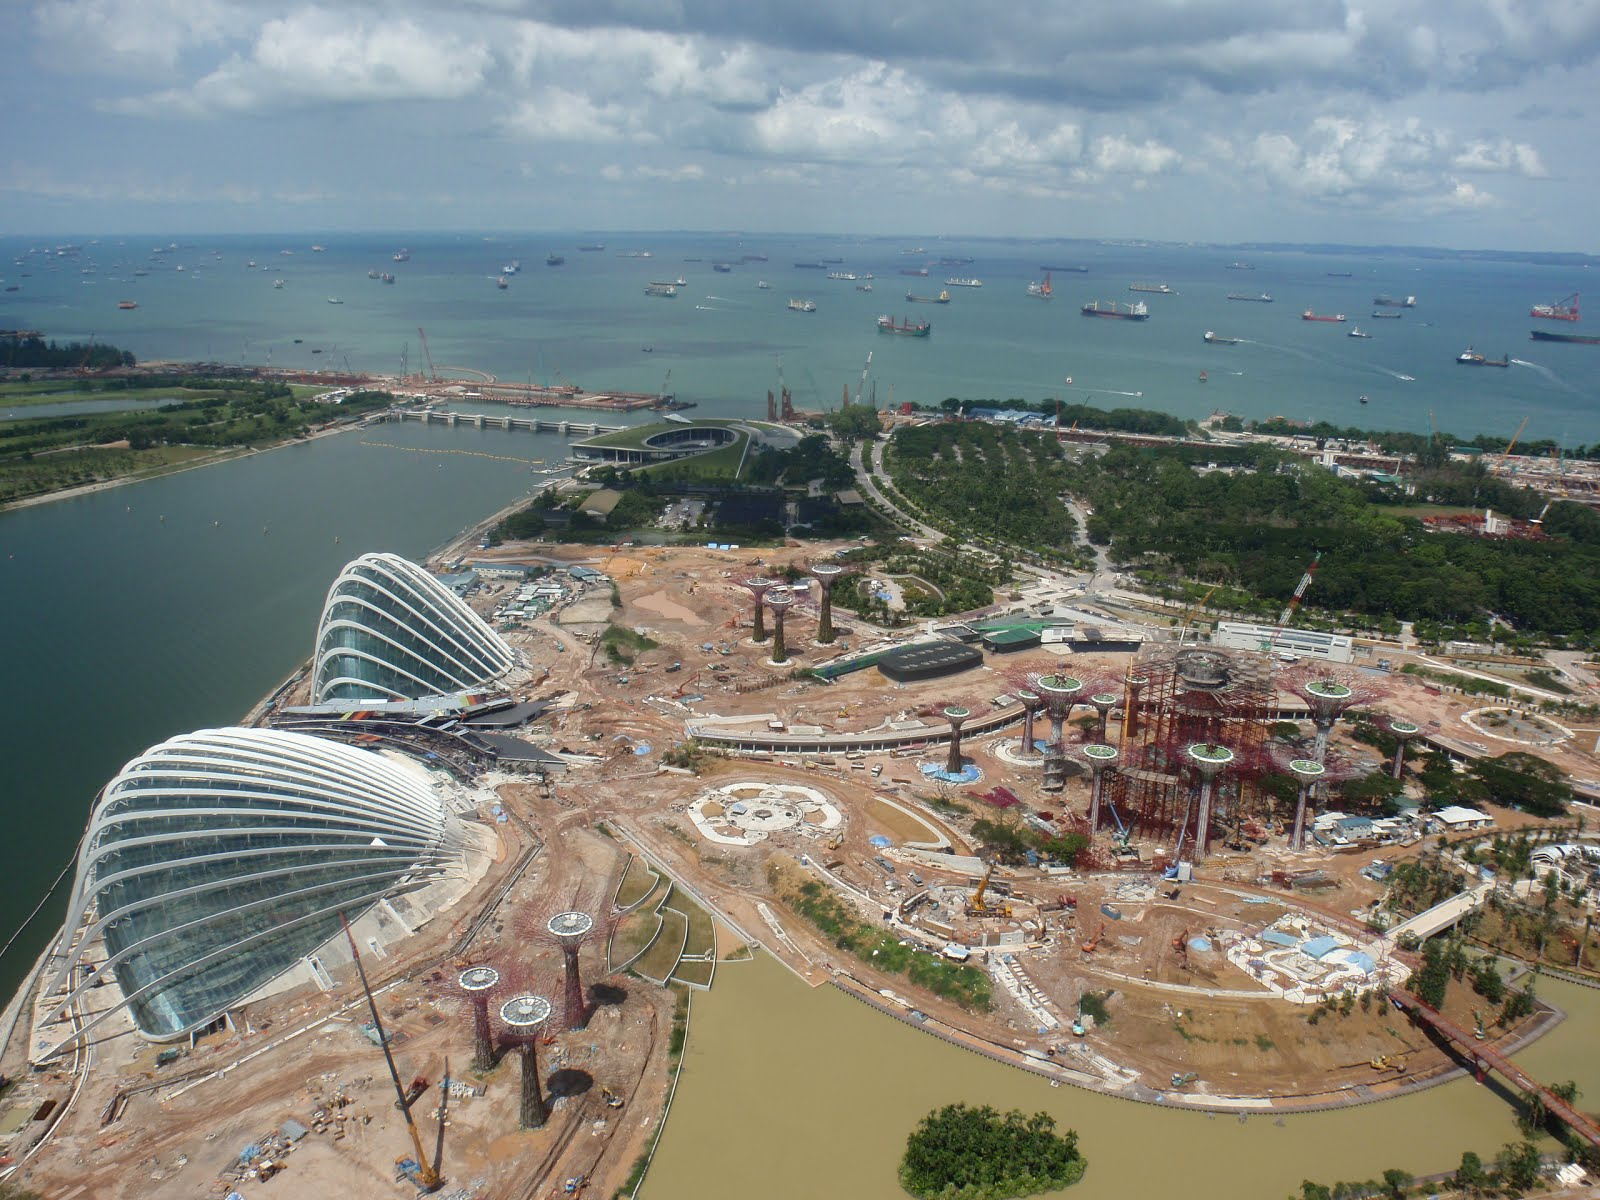 Gardens by the bay singapore construction work at july 2011 photo